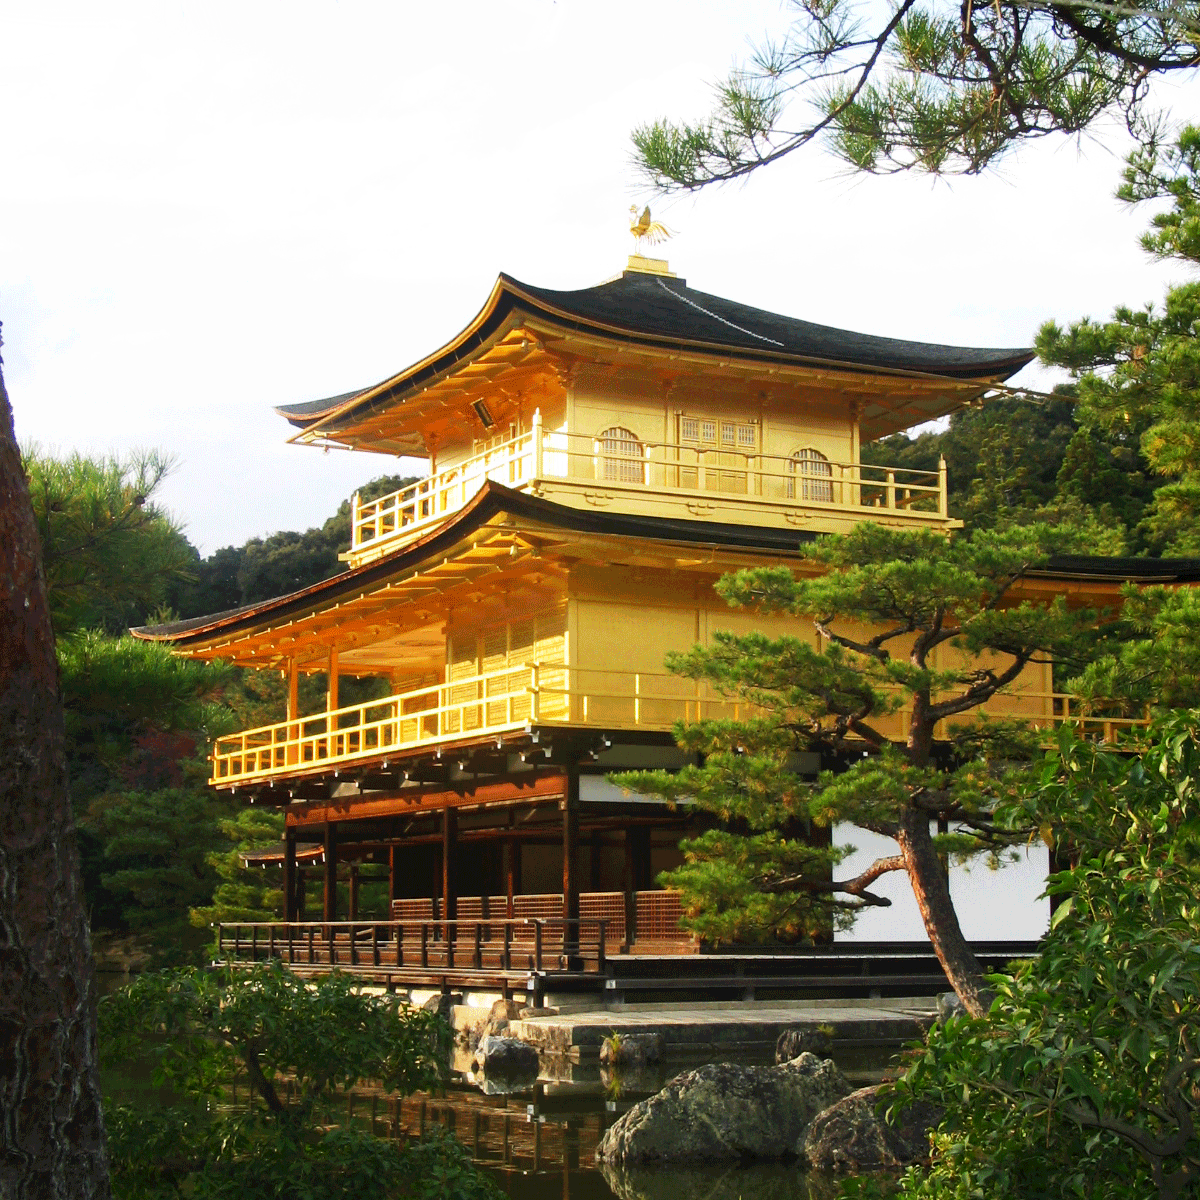 Japan Trip Bucket List: 50 Things To Do & See - Today I ...